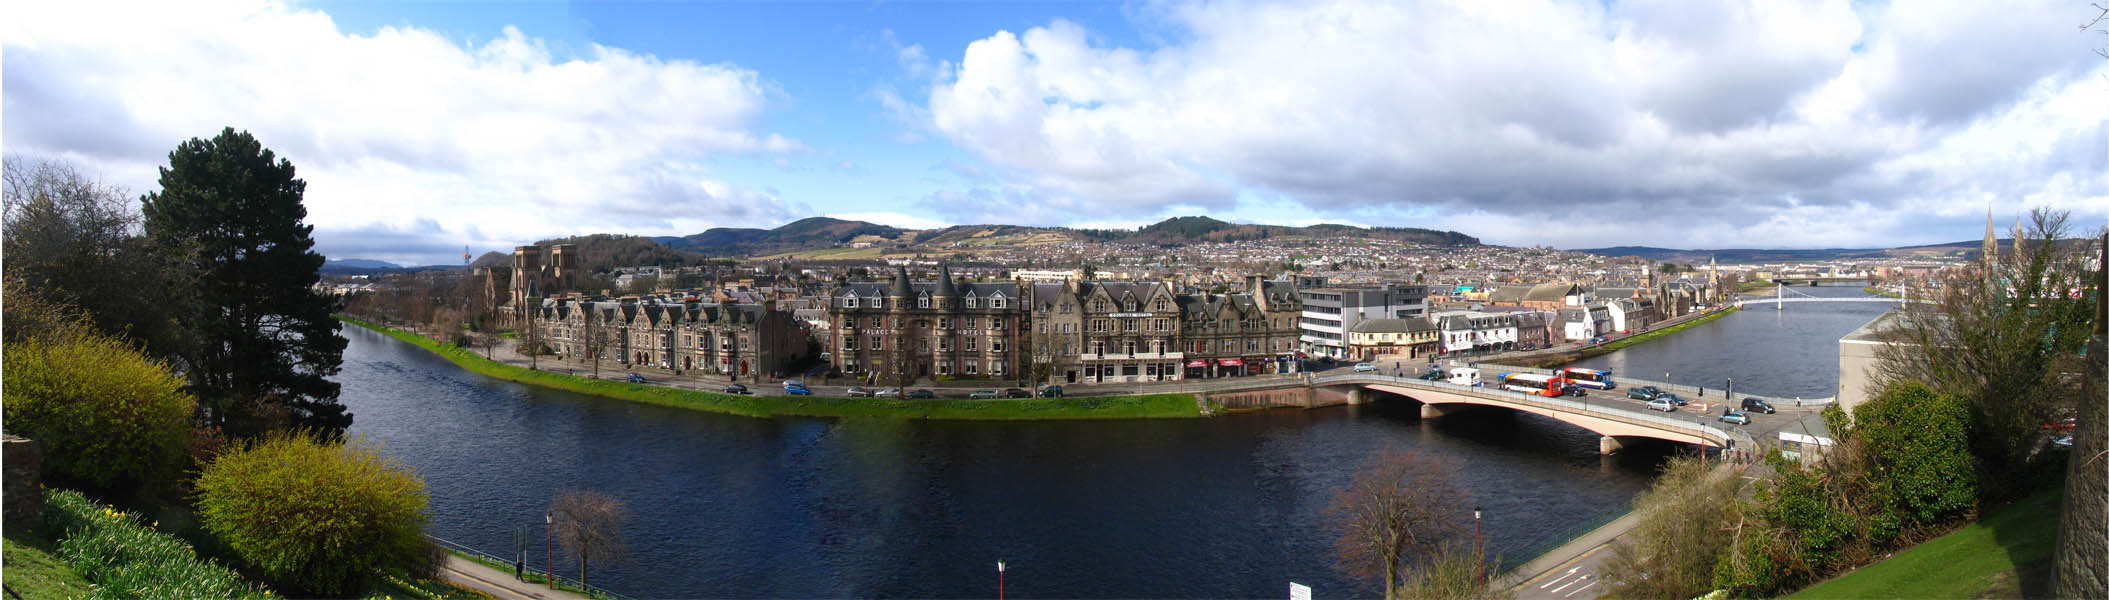 Inverness Pano